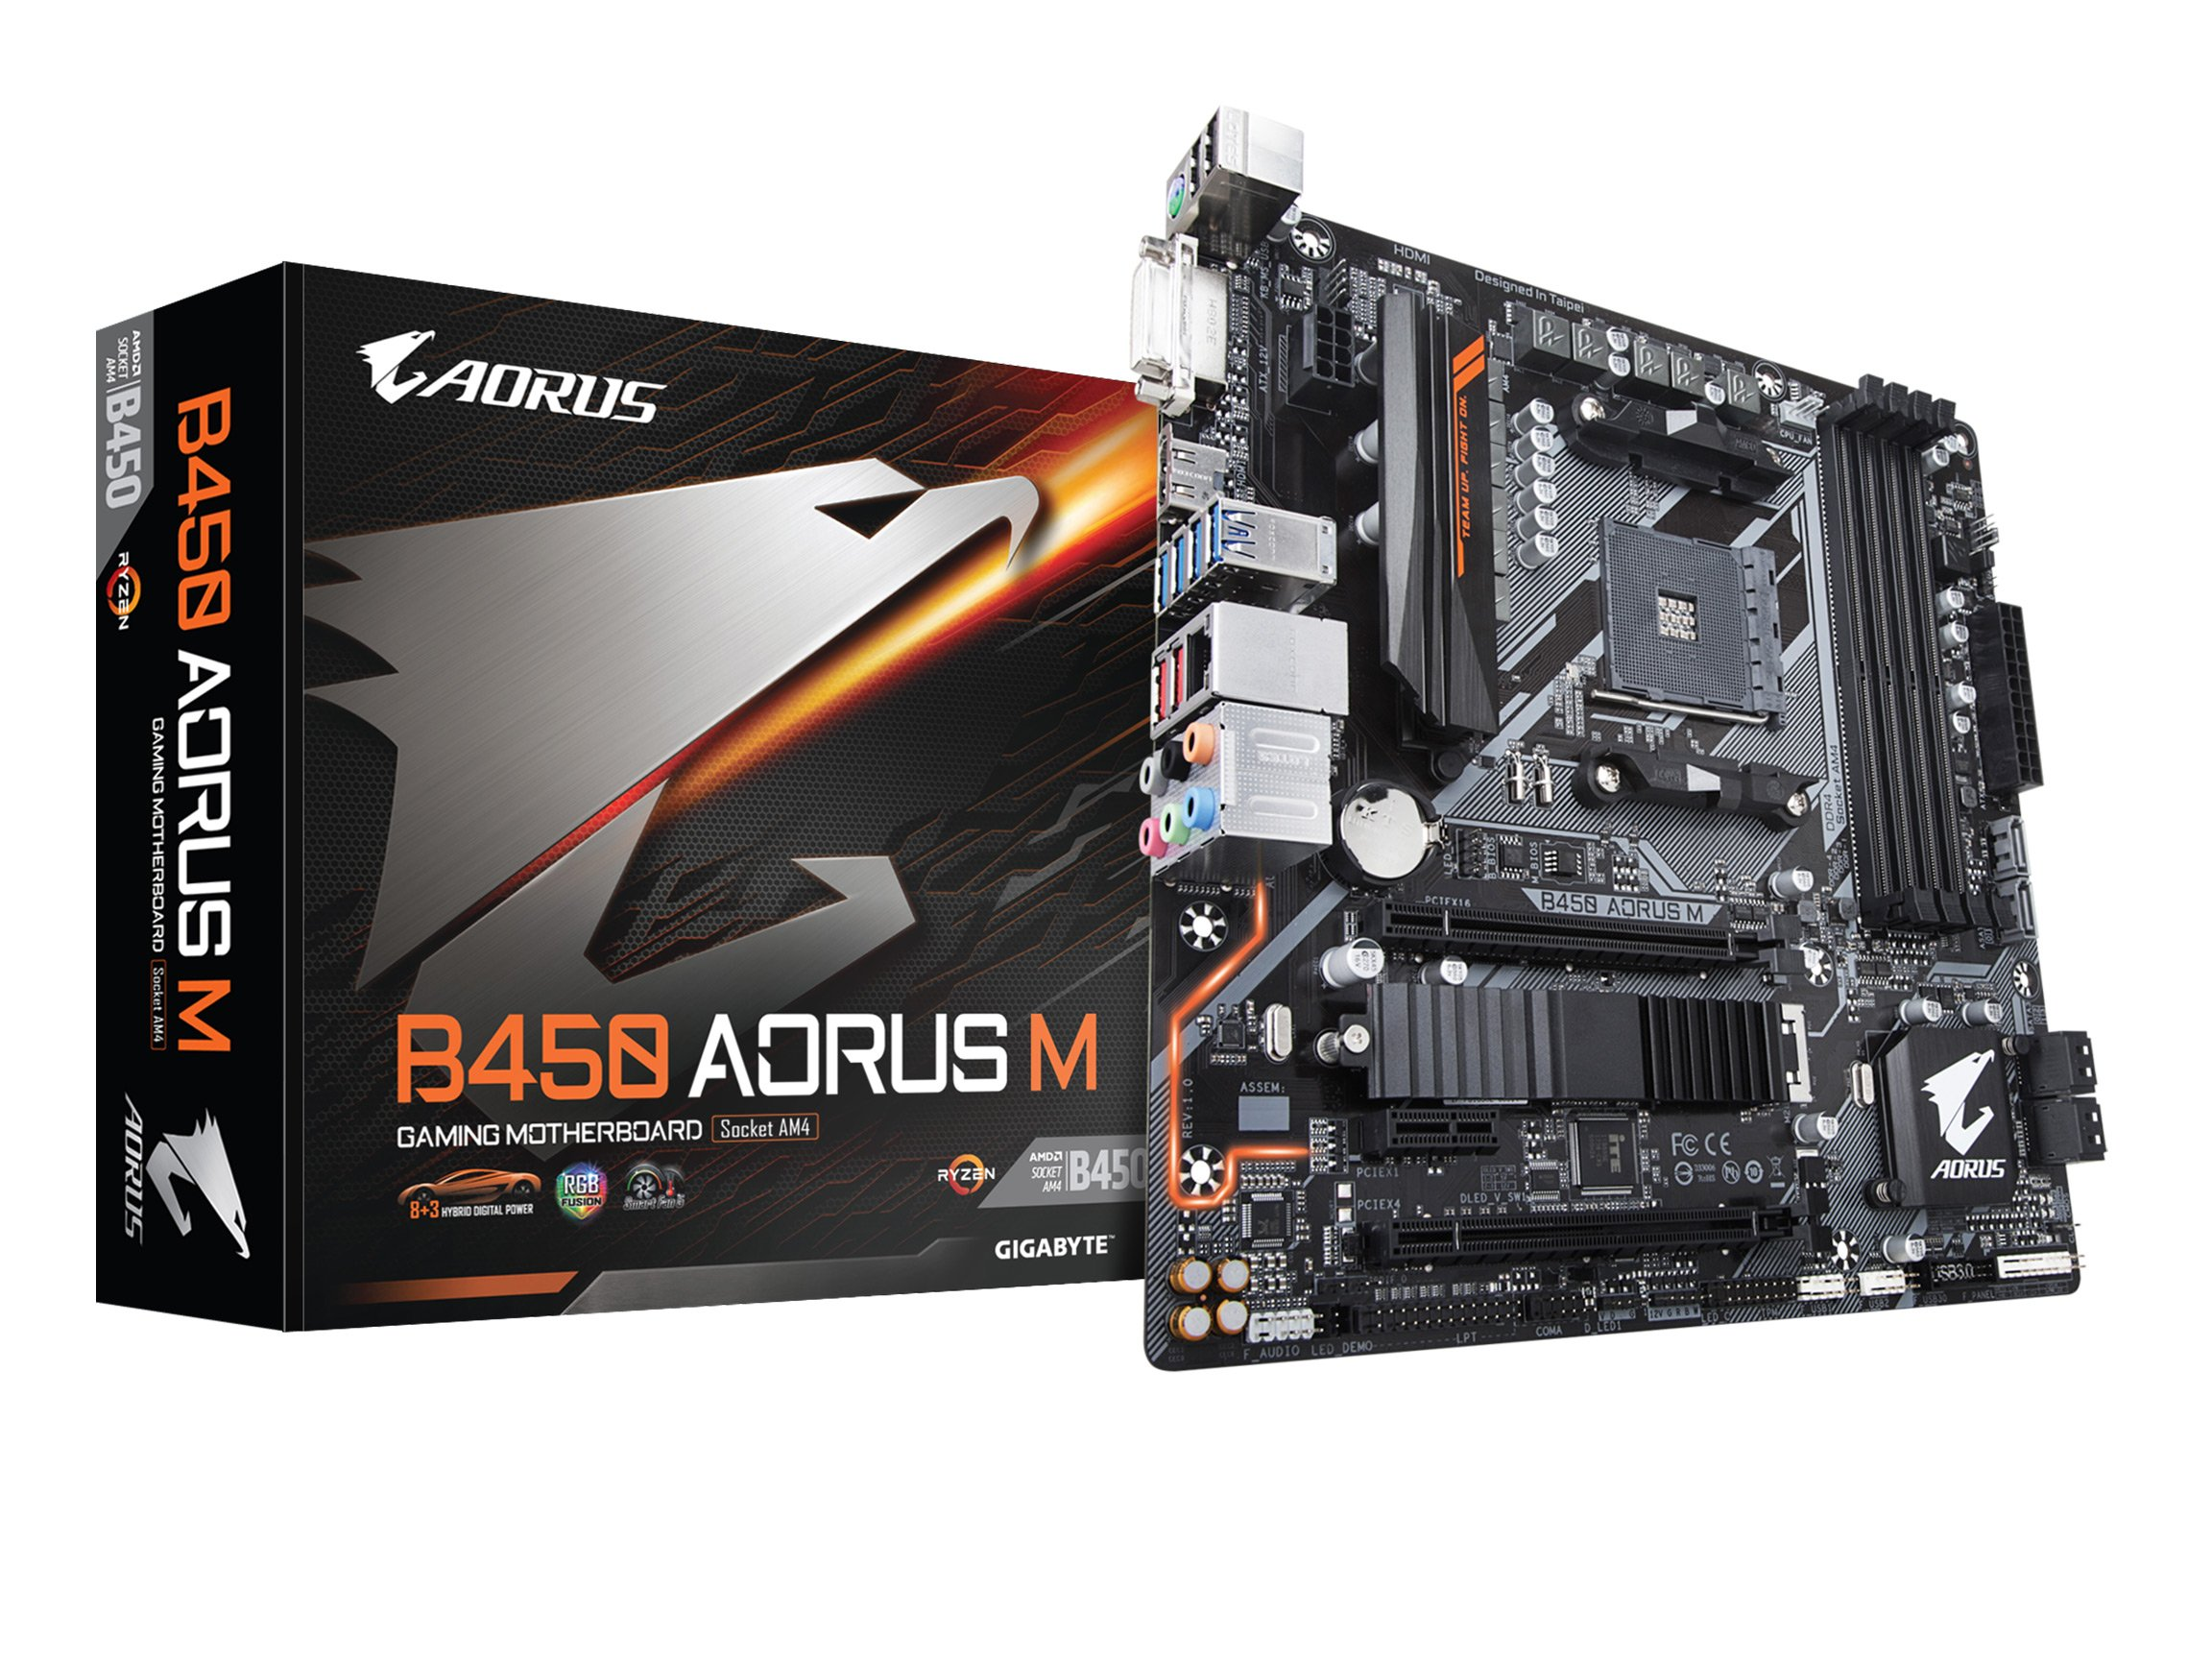 GIGABYTE B450 AORUS M (AMD Ryzen AM4/M.2 Thermal Guard/HDMI/DVI/USB 3.1 Gen 2/DDR4/Micro ATX/Motherboard) by Gigabyte